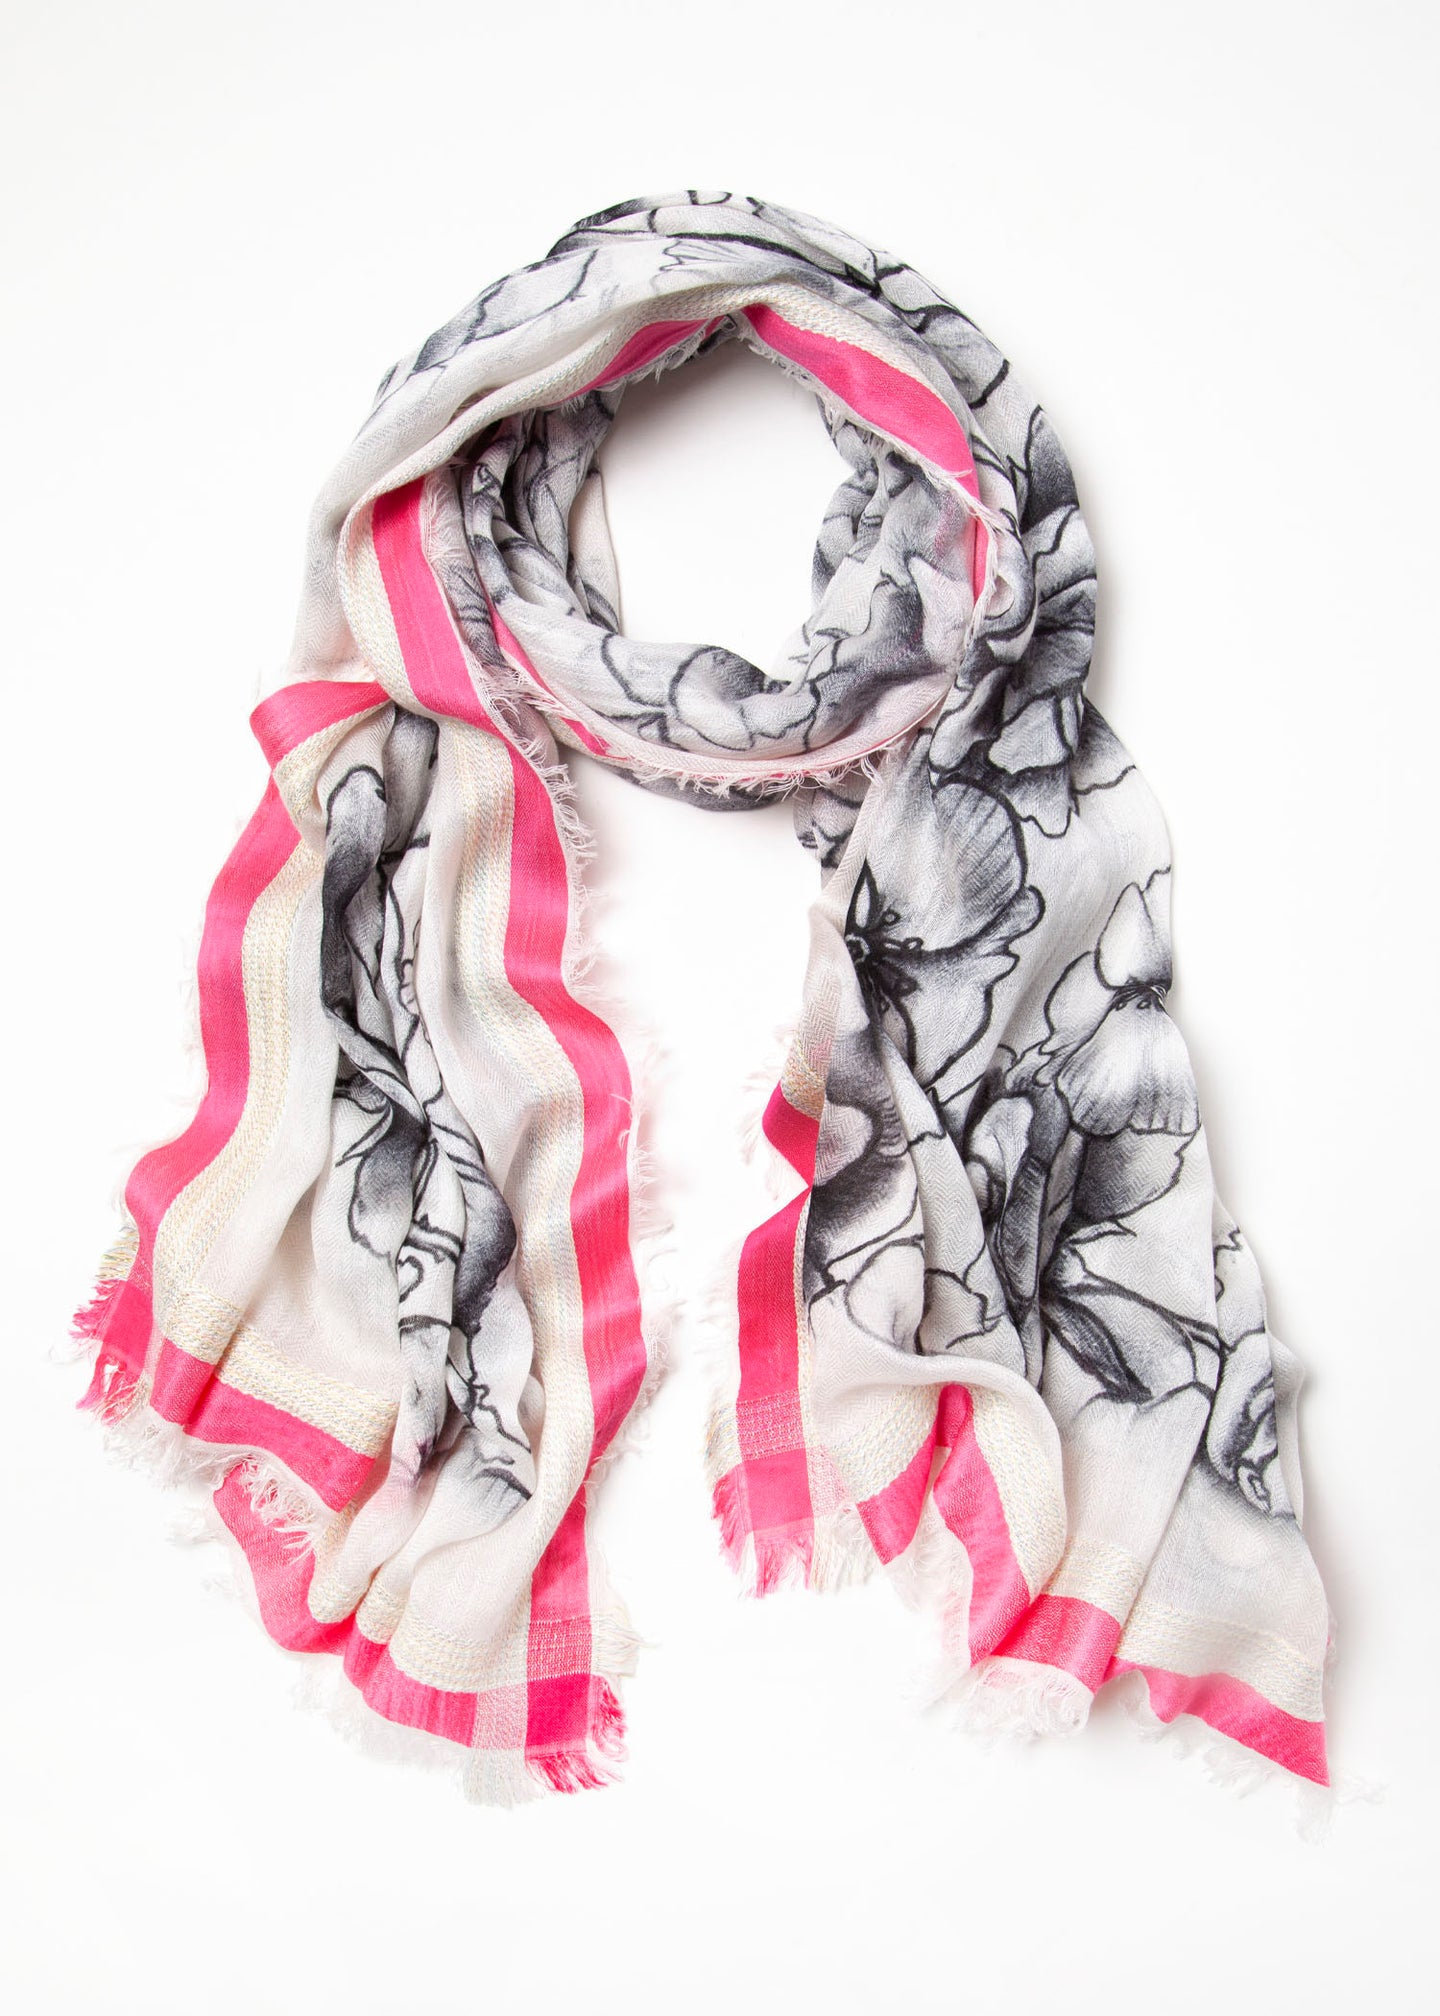 Black & White Rose Scarf